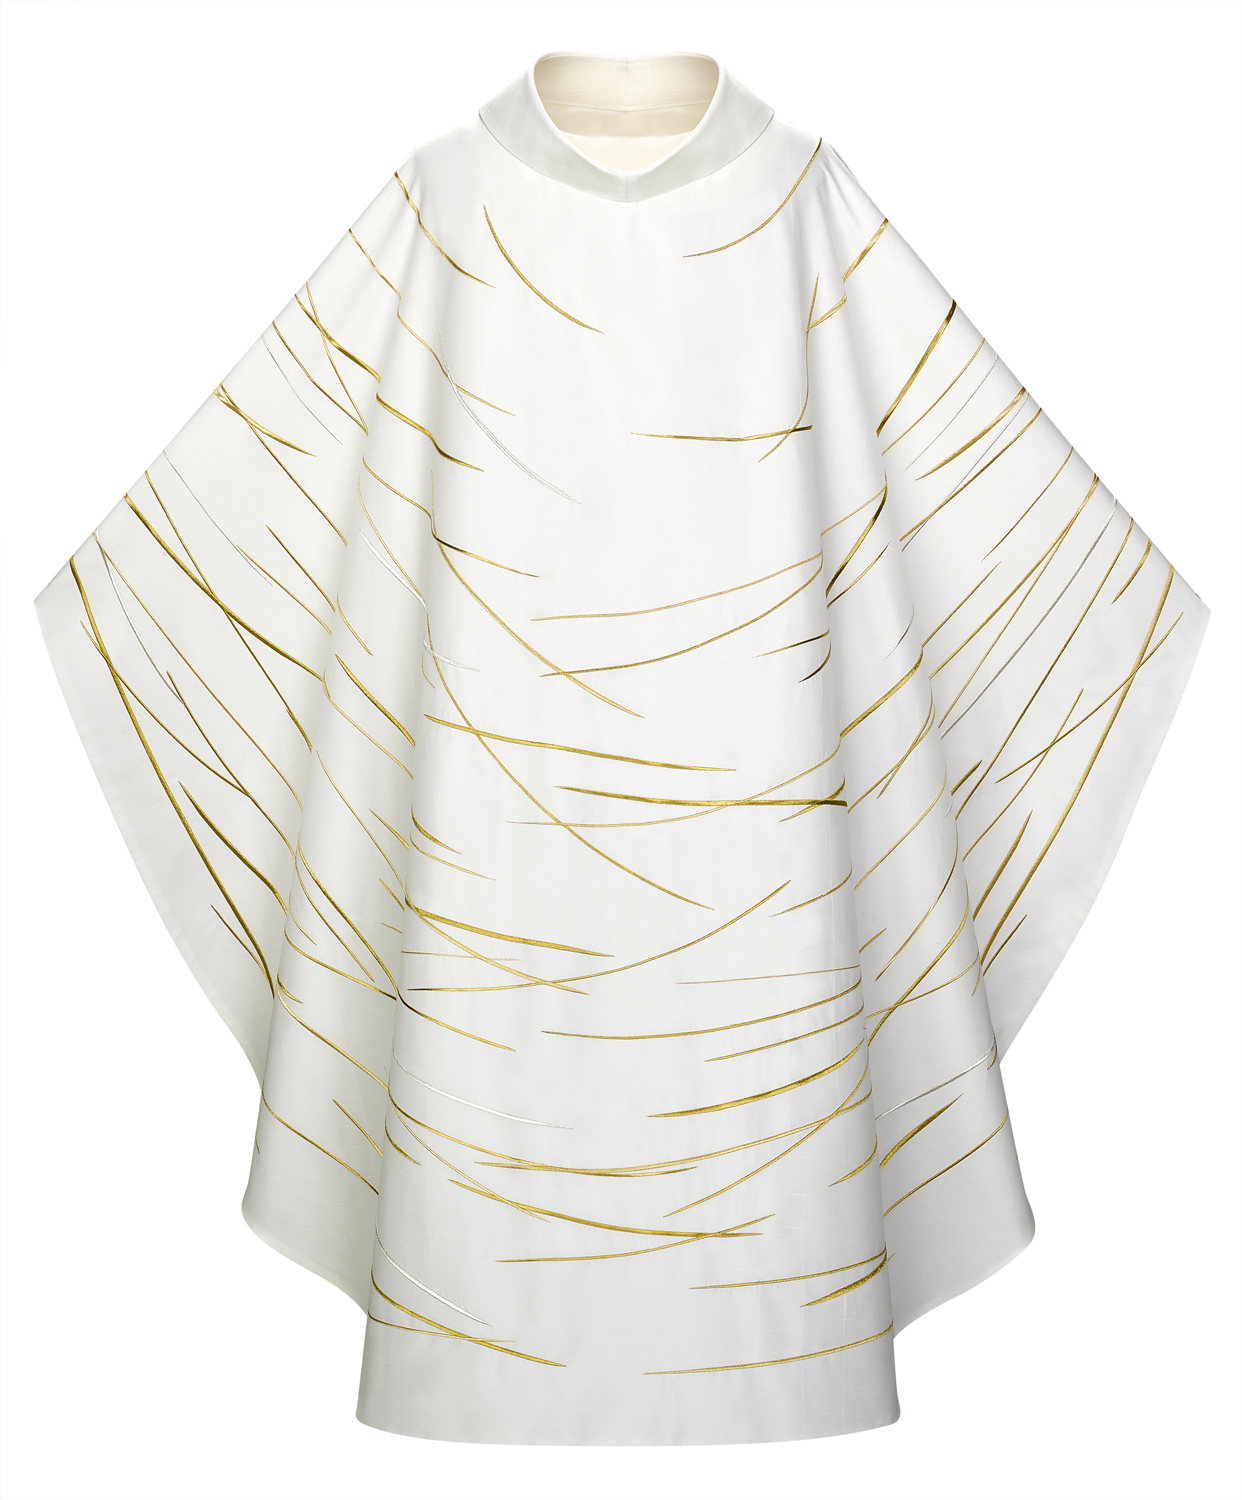 Chasuble | Pope Francis Our Lady of Fatima | 5285